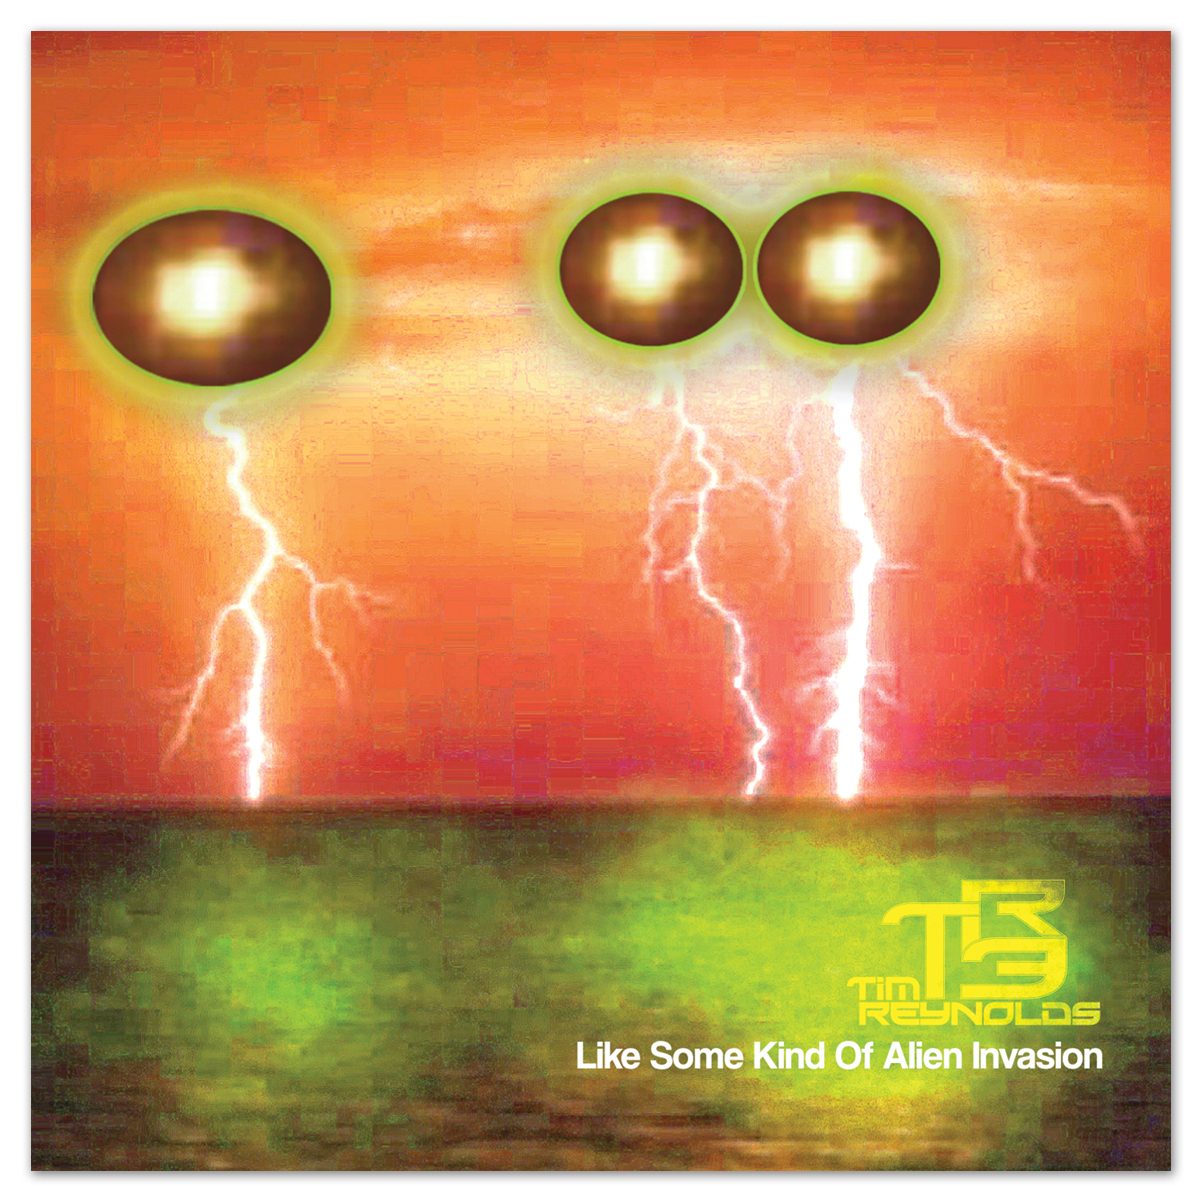 TR3 feat. Tim Reynolds 'Like Some Kind of Alien Invasion' CD